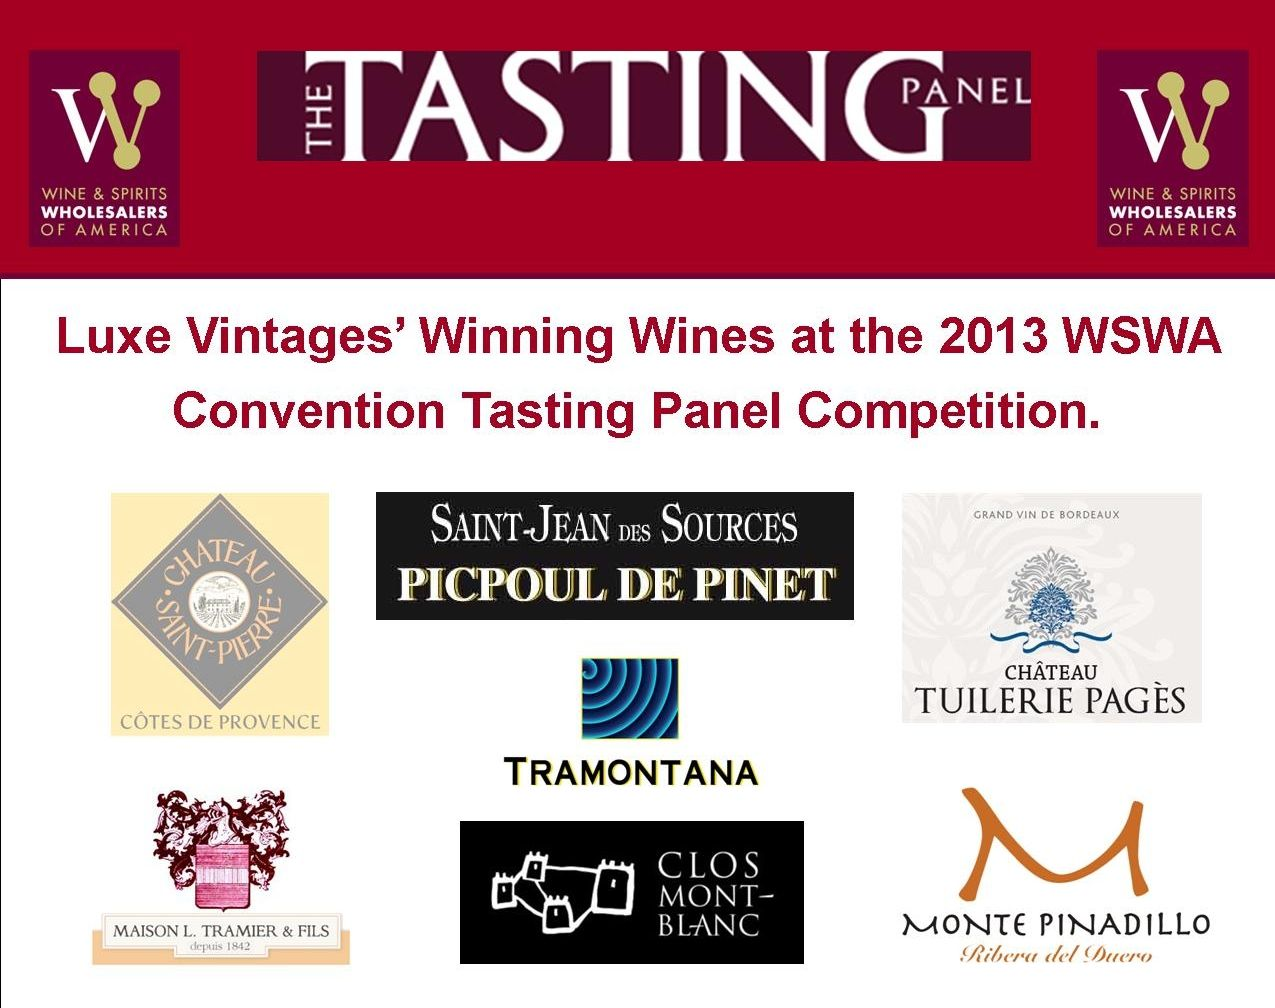 Luxe Vintages Winning Wines At Wswa Tasting Panel Competition Saint Jean Des Sources Picpoul De Pinet Chateau Sai Picpoul De Pinet Pinot Grigio Pierre Rose